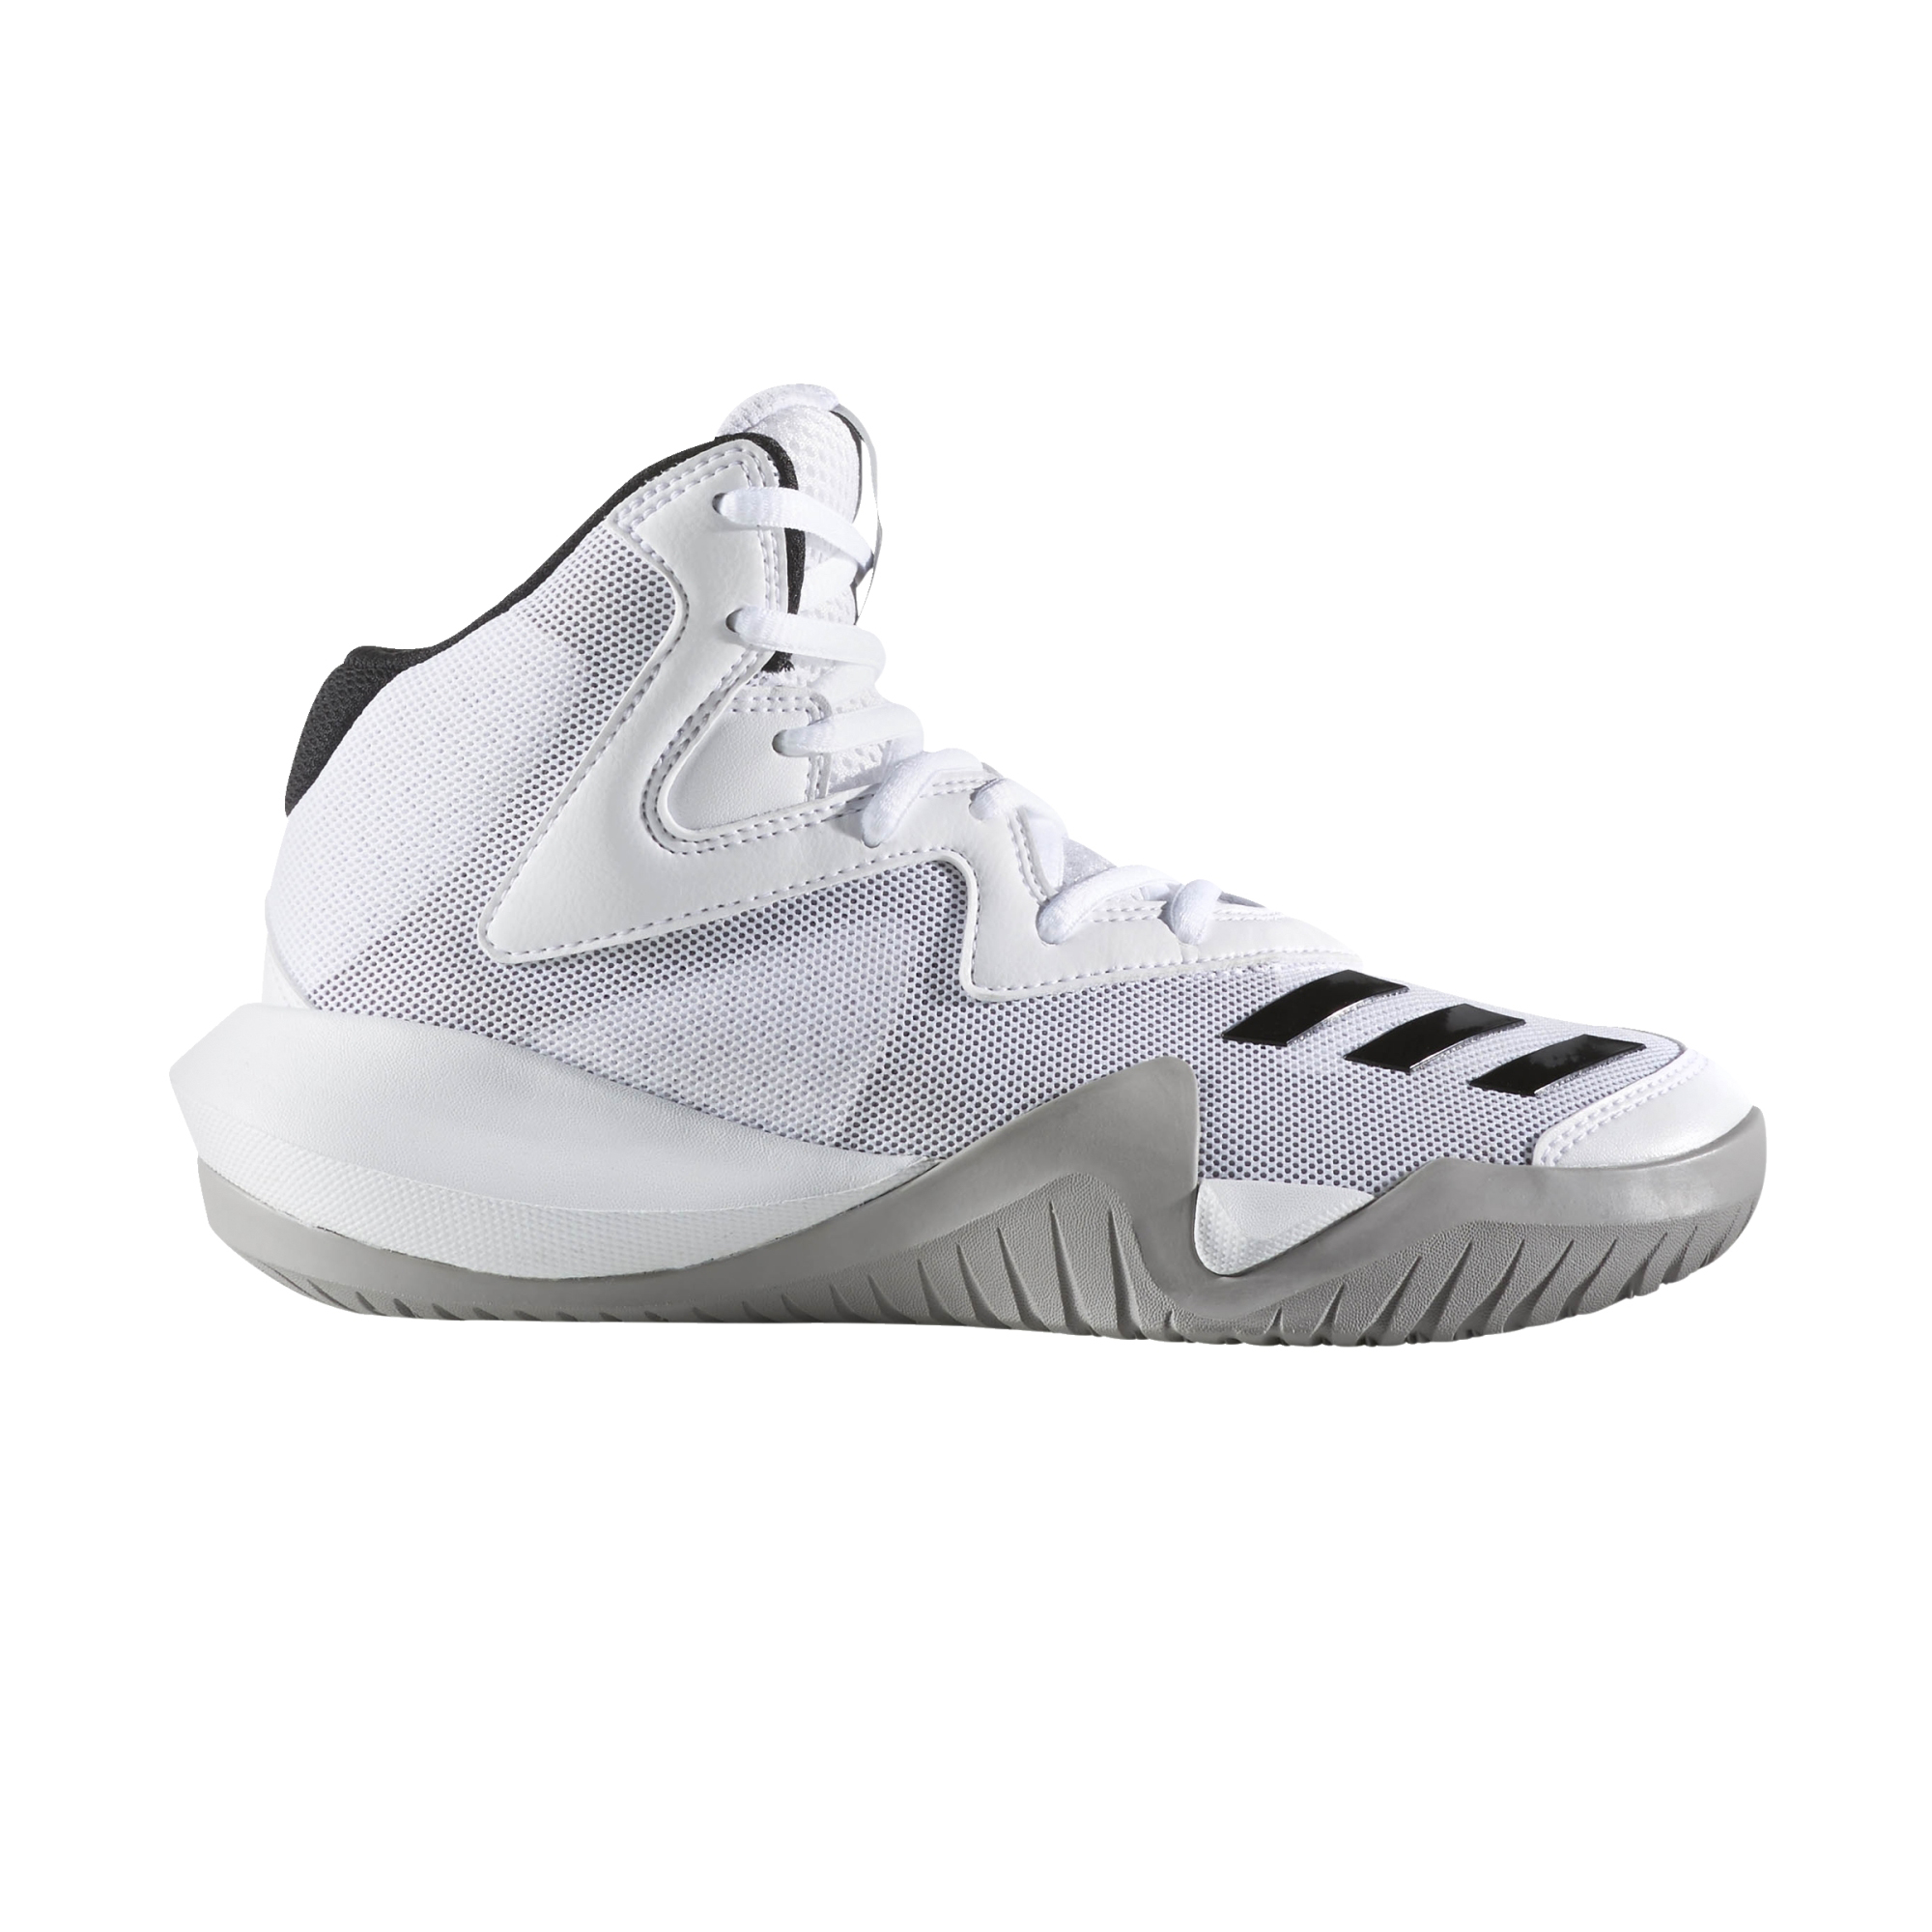 Basket Adidas Tech Super W Gris - 41 1/3 TEAip